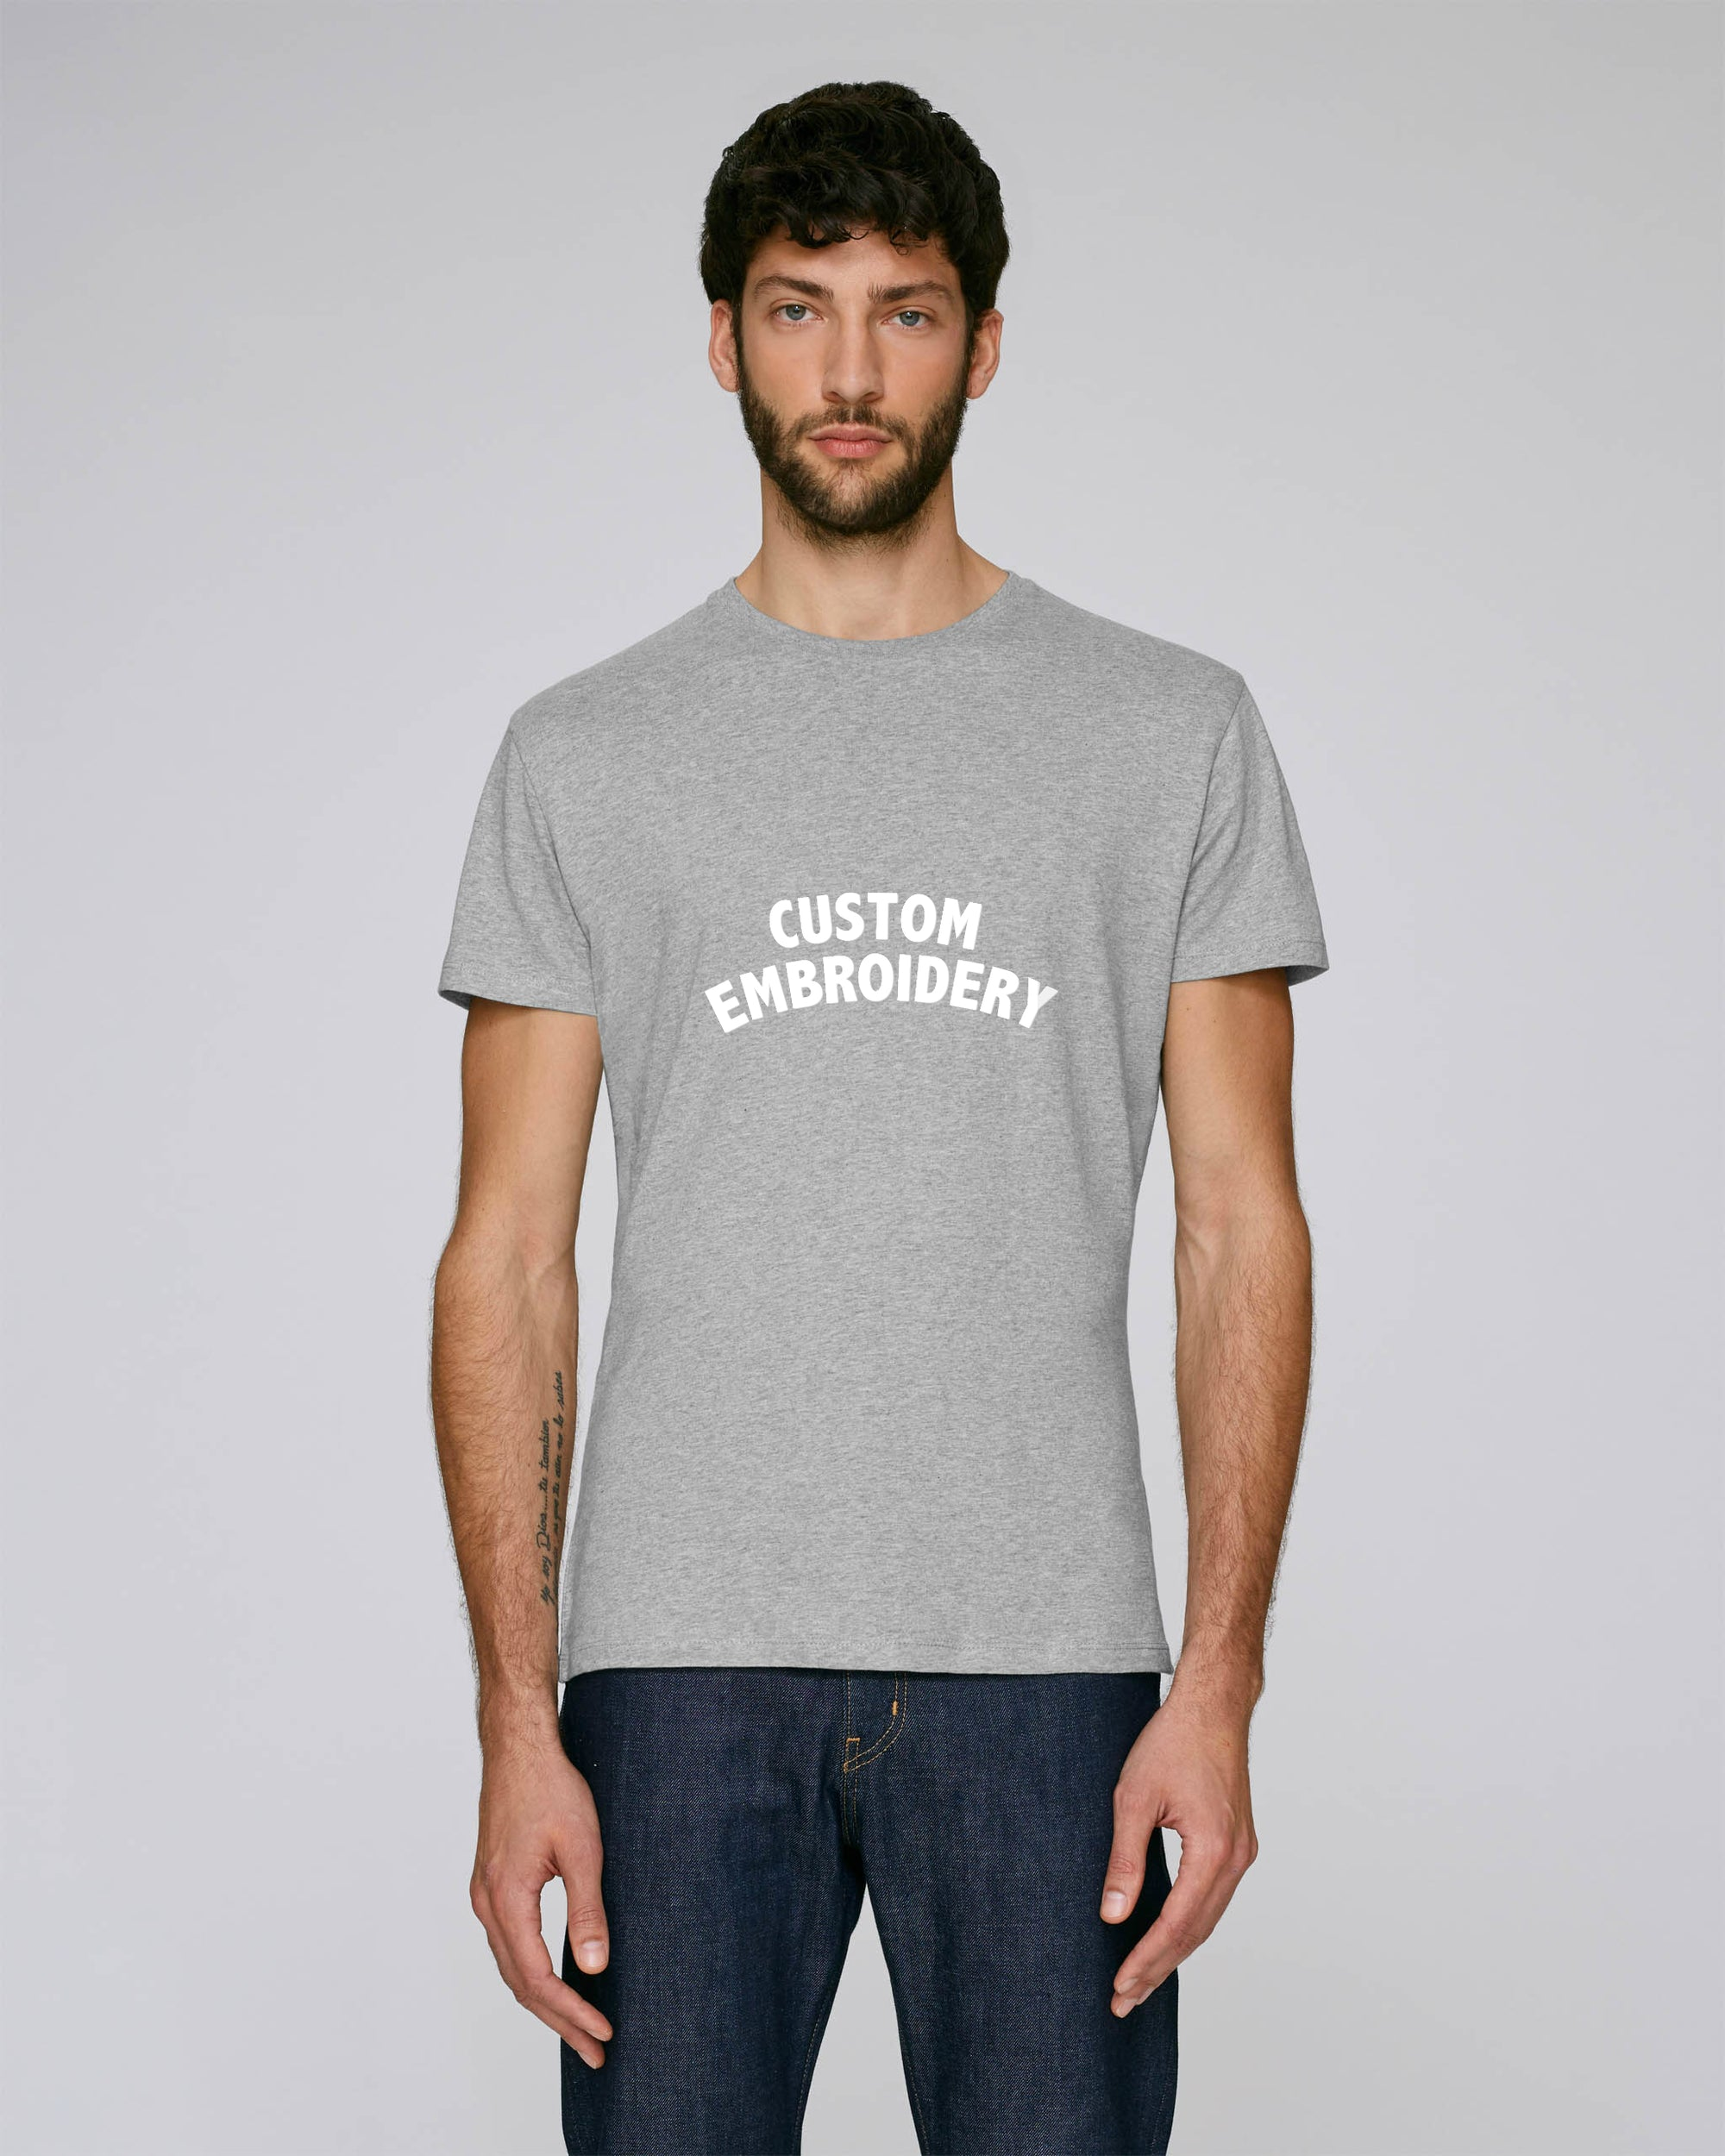 MEN'S FITTED ORGANIC COTTON 'FEELS' T-SHIRT - customisable centre chest embroidery